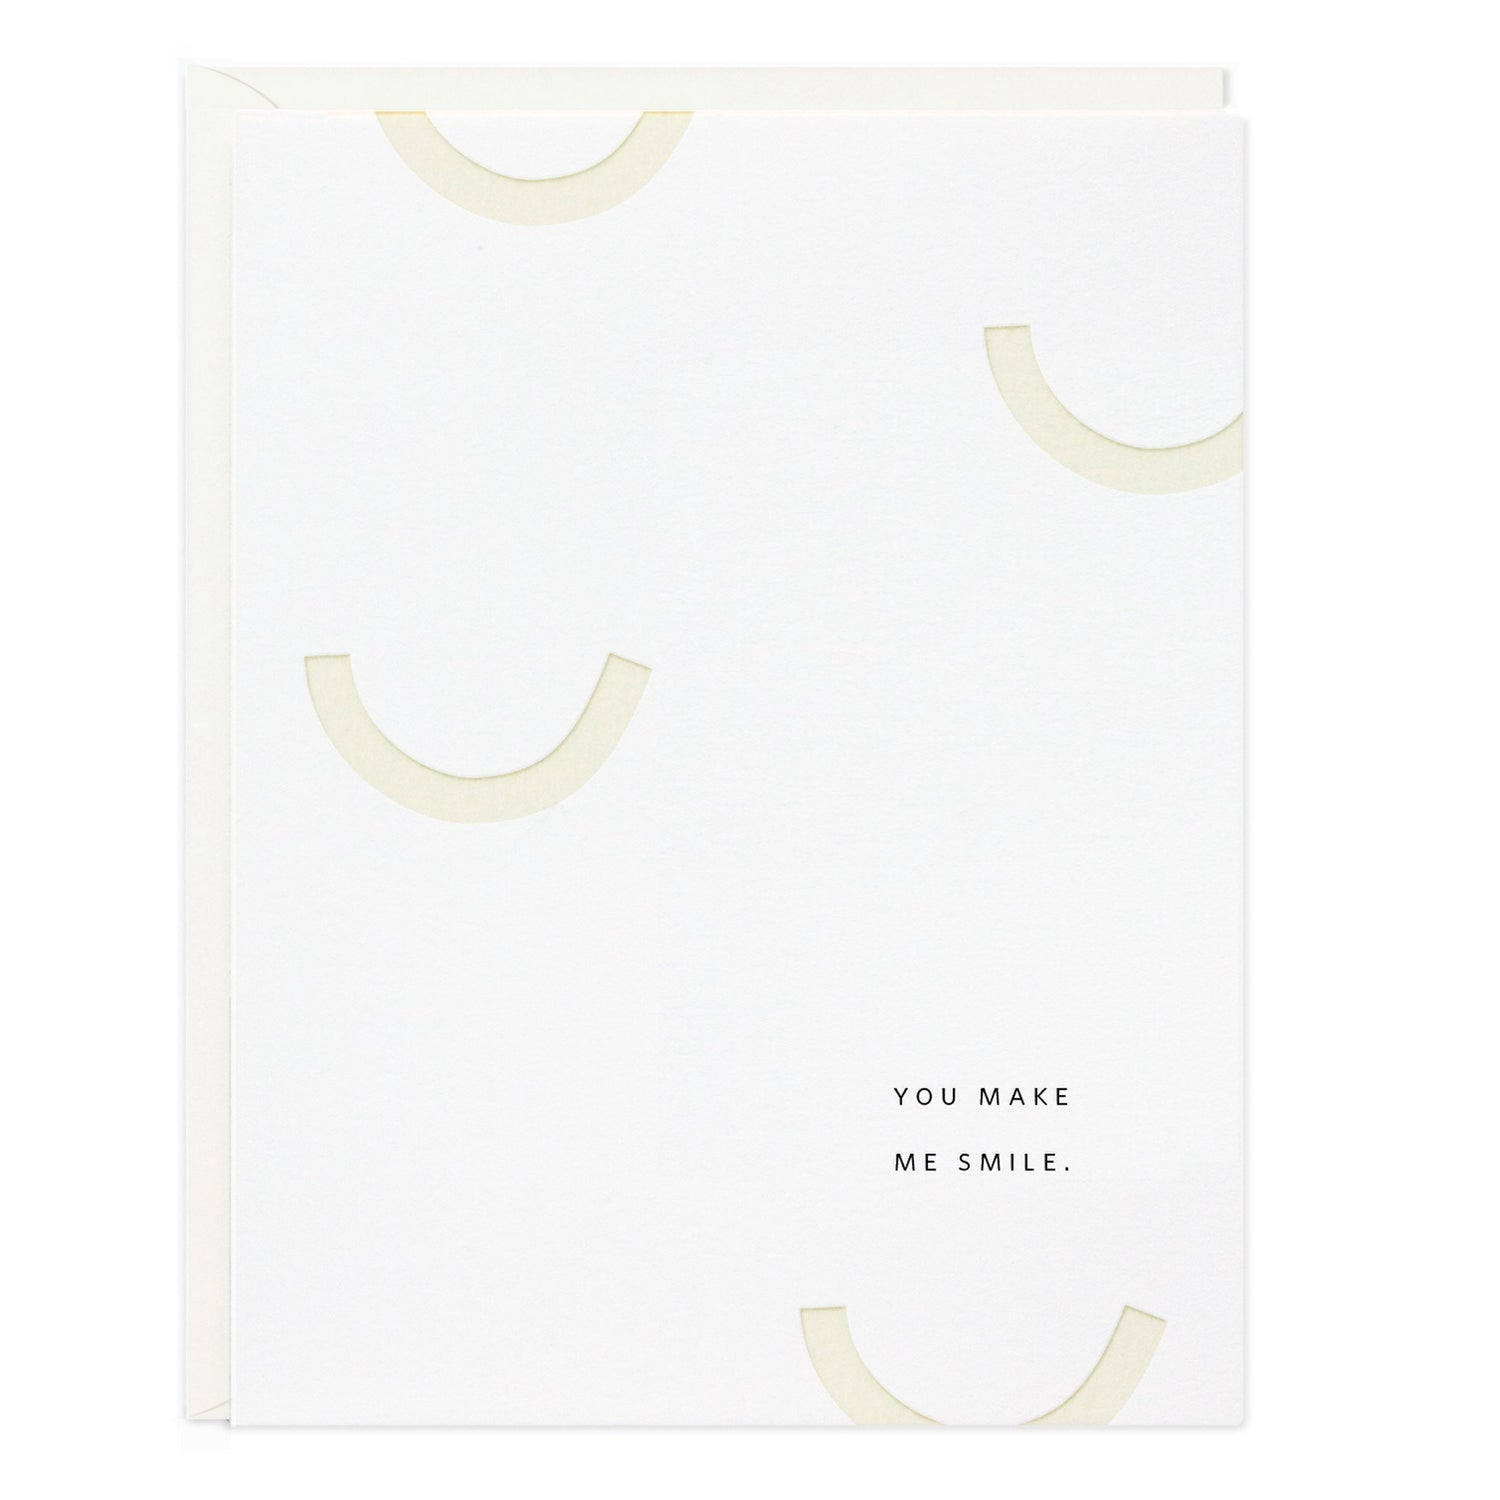 Ramona & Ruth - You Make Me Smile Greeting Card